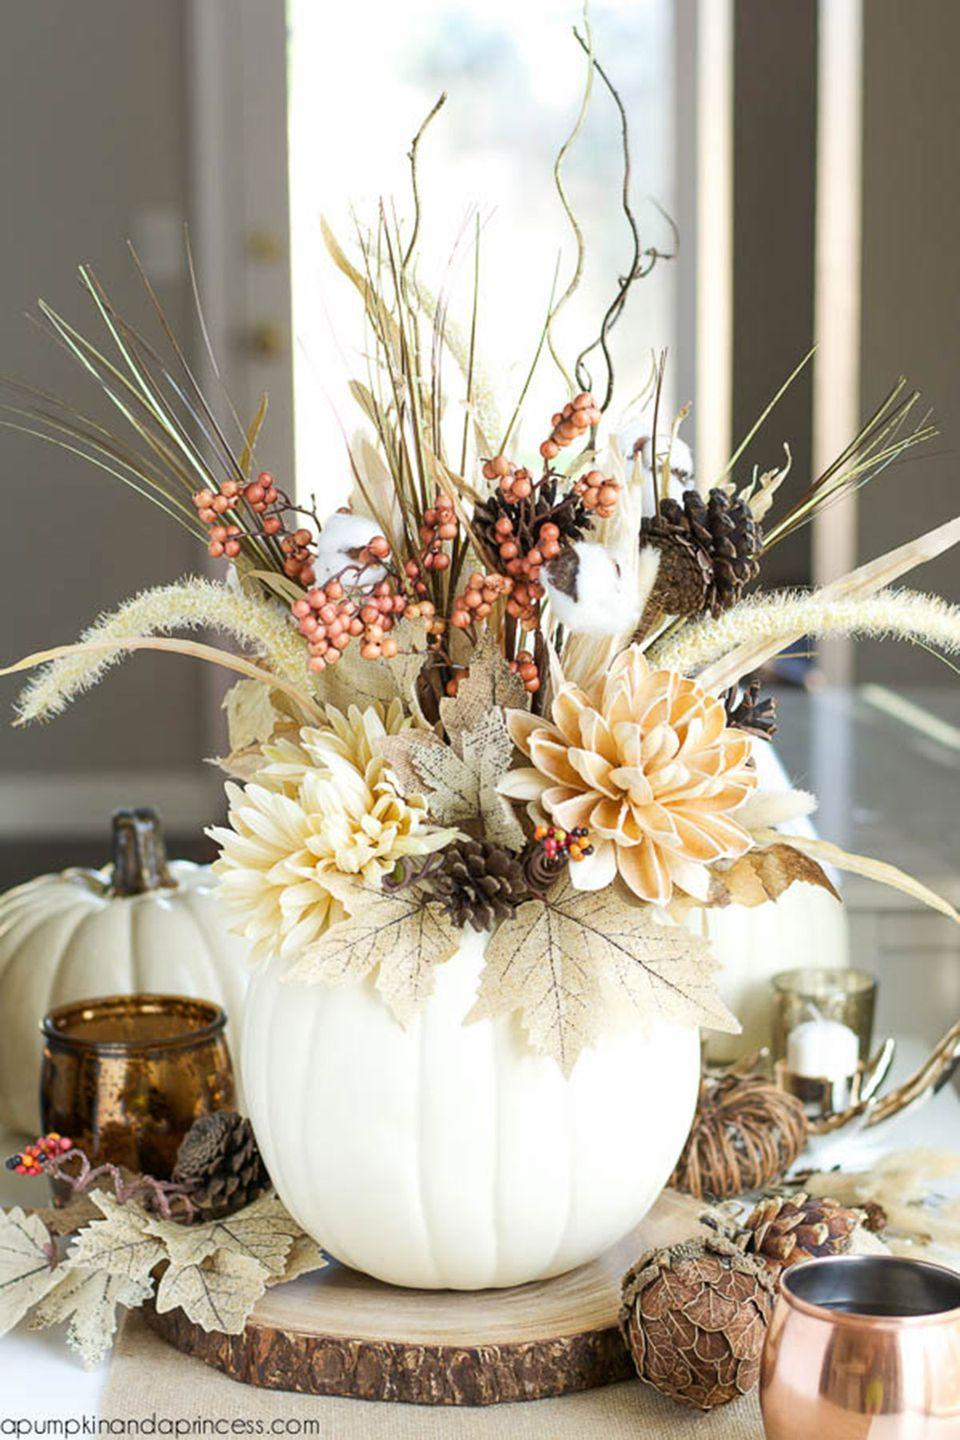 """<p>Trade your glass vase for a faux pumpkin to take your Thanksgiving decor to the next level. </p><p><strong>Get the tutorial at <a href=""""http://apumpkinandaprincess.com/2015/09/diy-pumpkin-vase.html"""" rel=""""nofollow noopener"""" target=""""_blank"""" data-ylk=""""slk:A Pumpkin and a Princess"""" class=""""link rapid-noclick-resp"""">A Pumpkin and a Princess</a>.</strong></p><p><a class=""""link rapid-noclick-resp"""" href=""""https://funkins.com/"""" rel=""""nofollow noopener"""" target=""""_blank"""" data-ylk=""""slk:SHOP FAUX PUMPKINS""""><strong>SHOP FAUX PUMPKINS</strong></a></p>"""